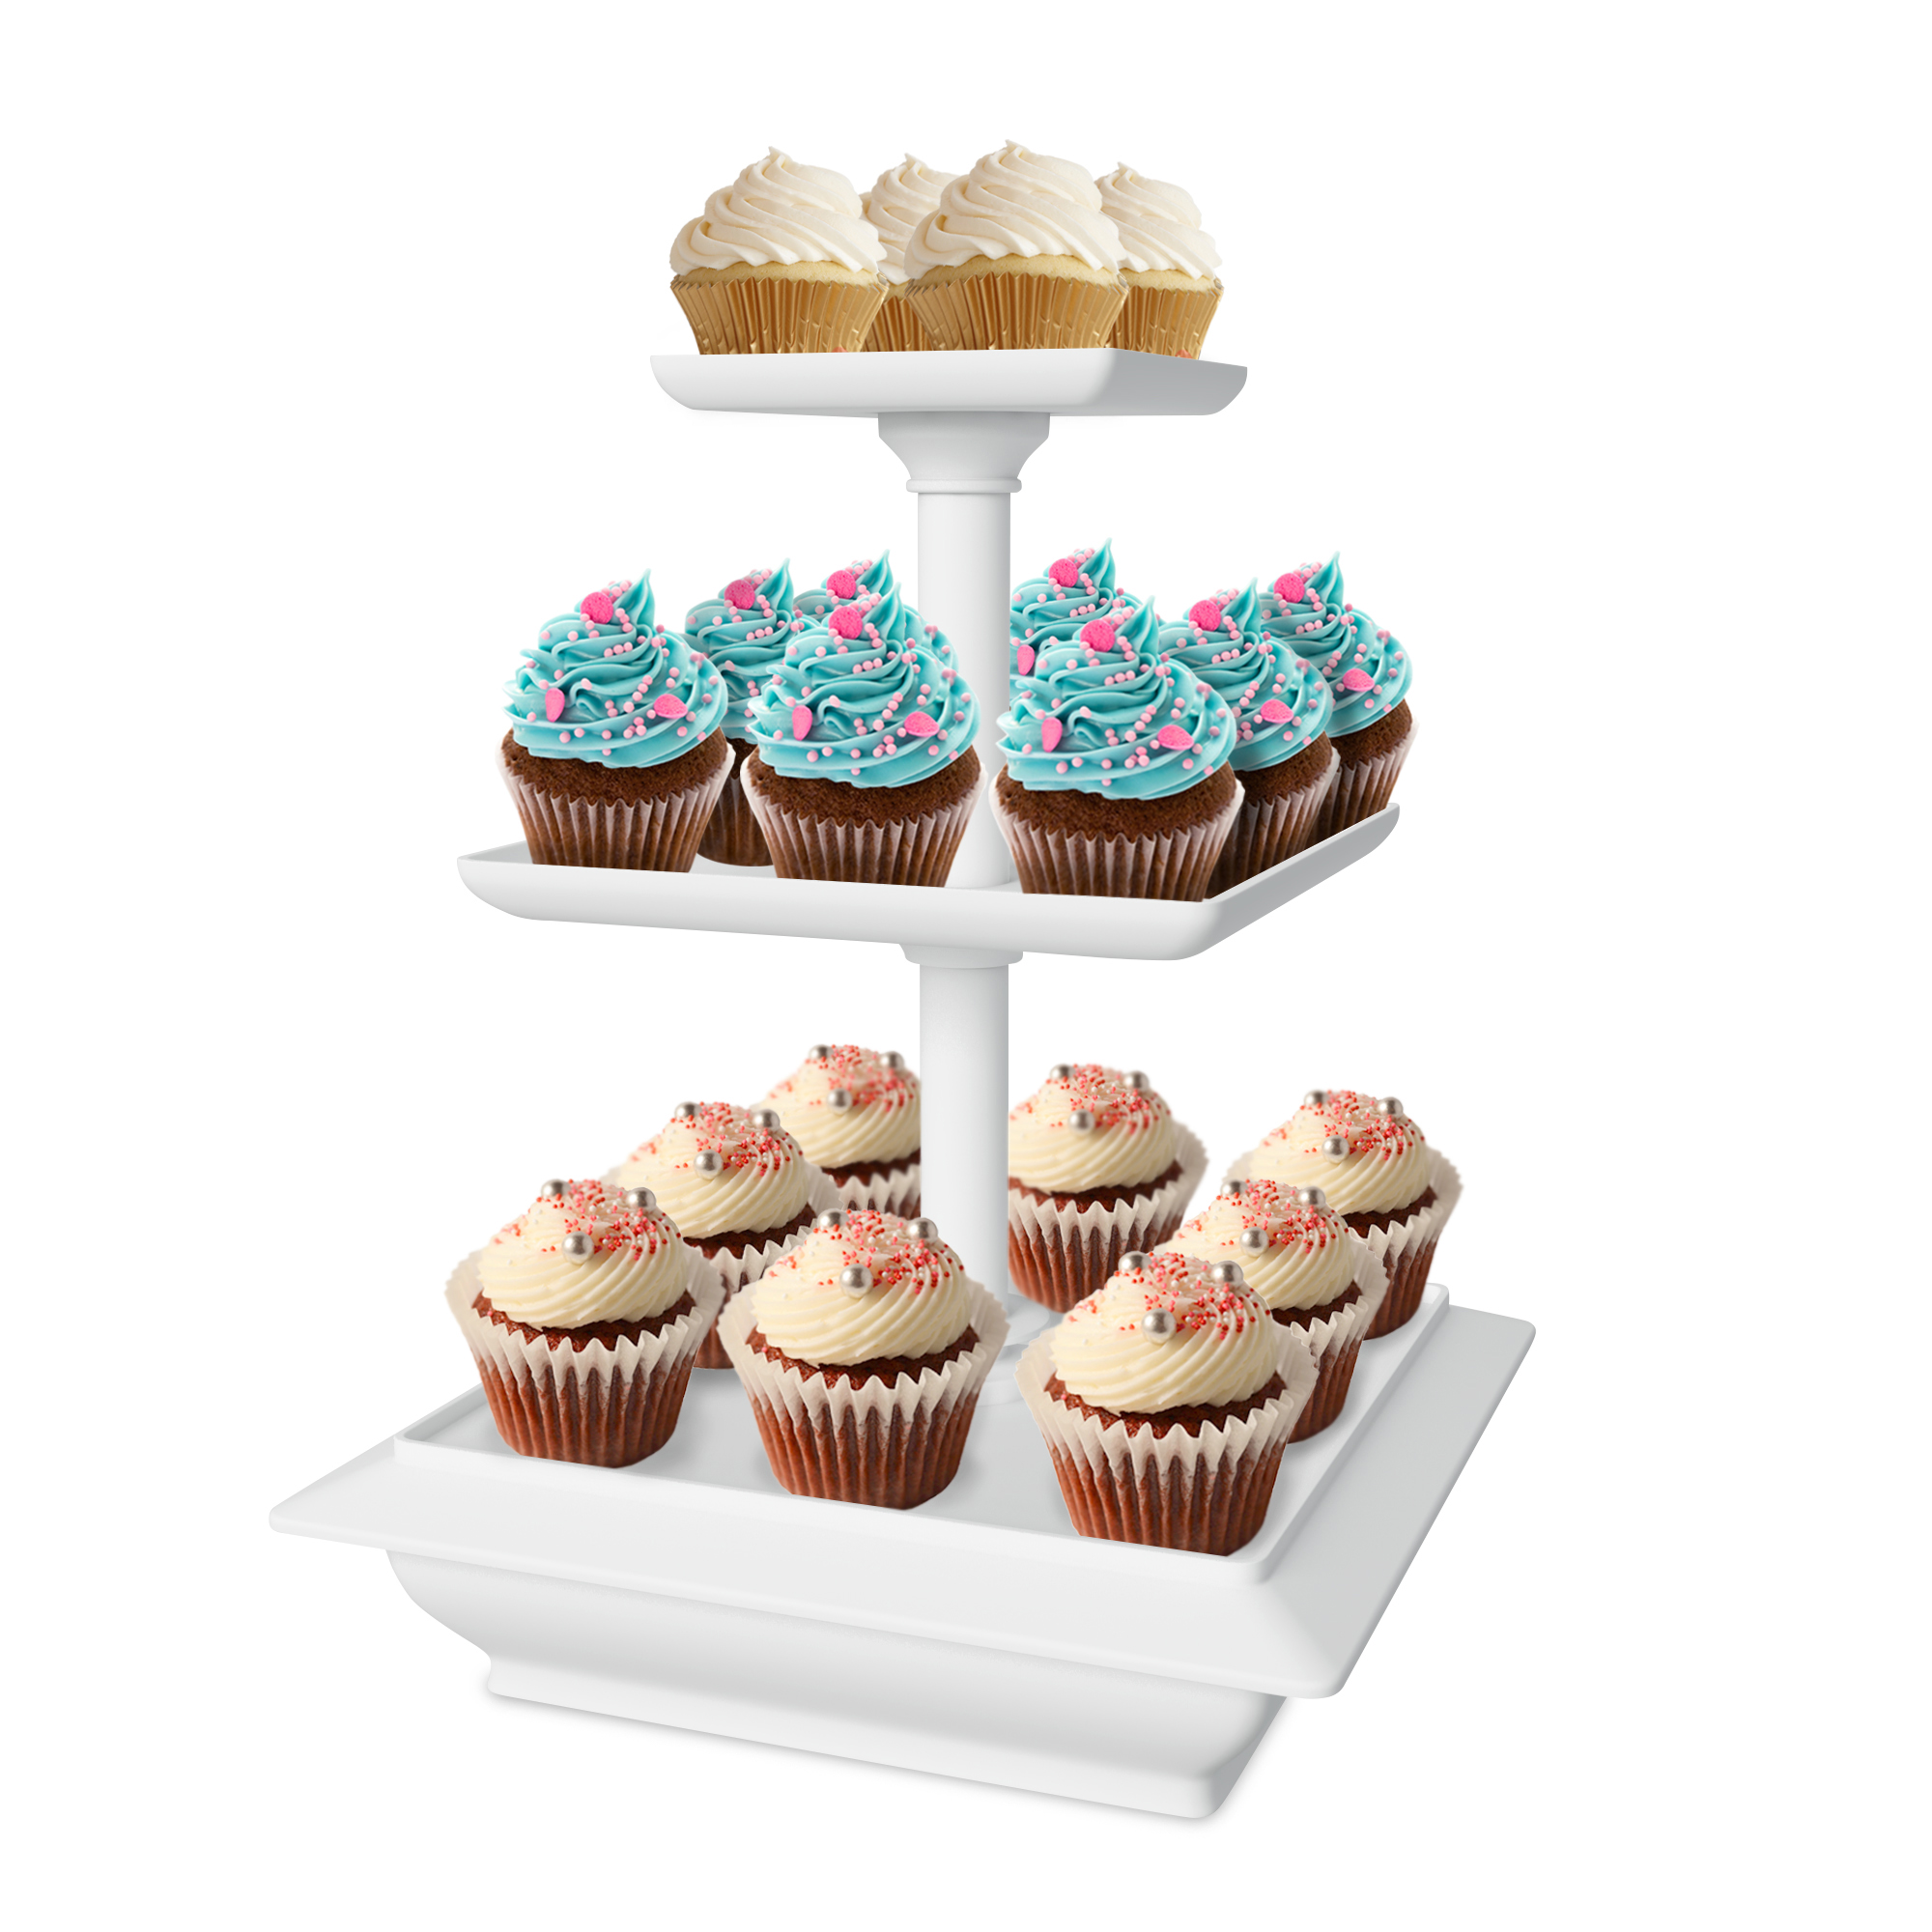 Chef Buddy 3-Tier Collapsible Dessert Stand, White